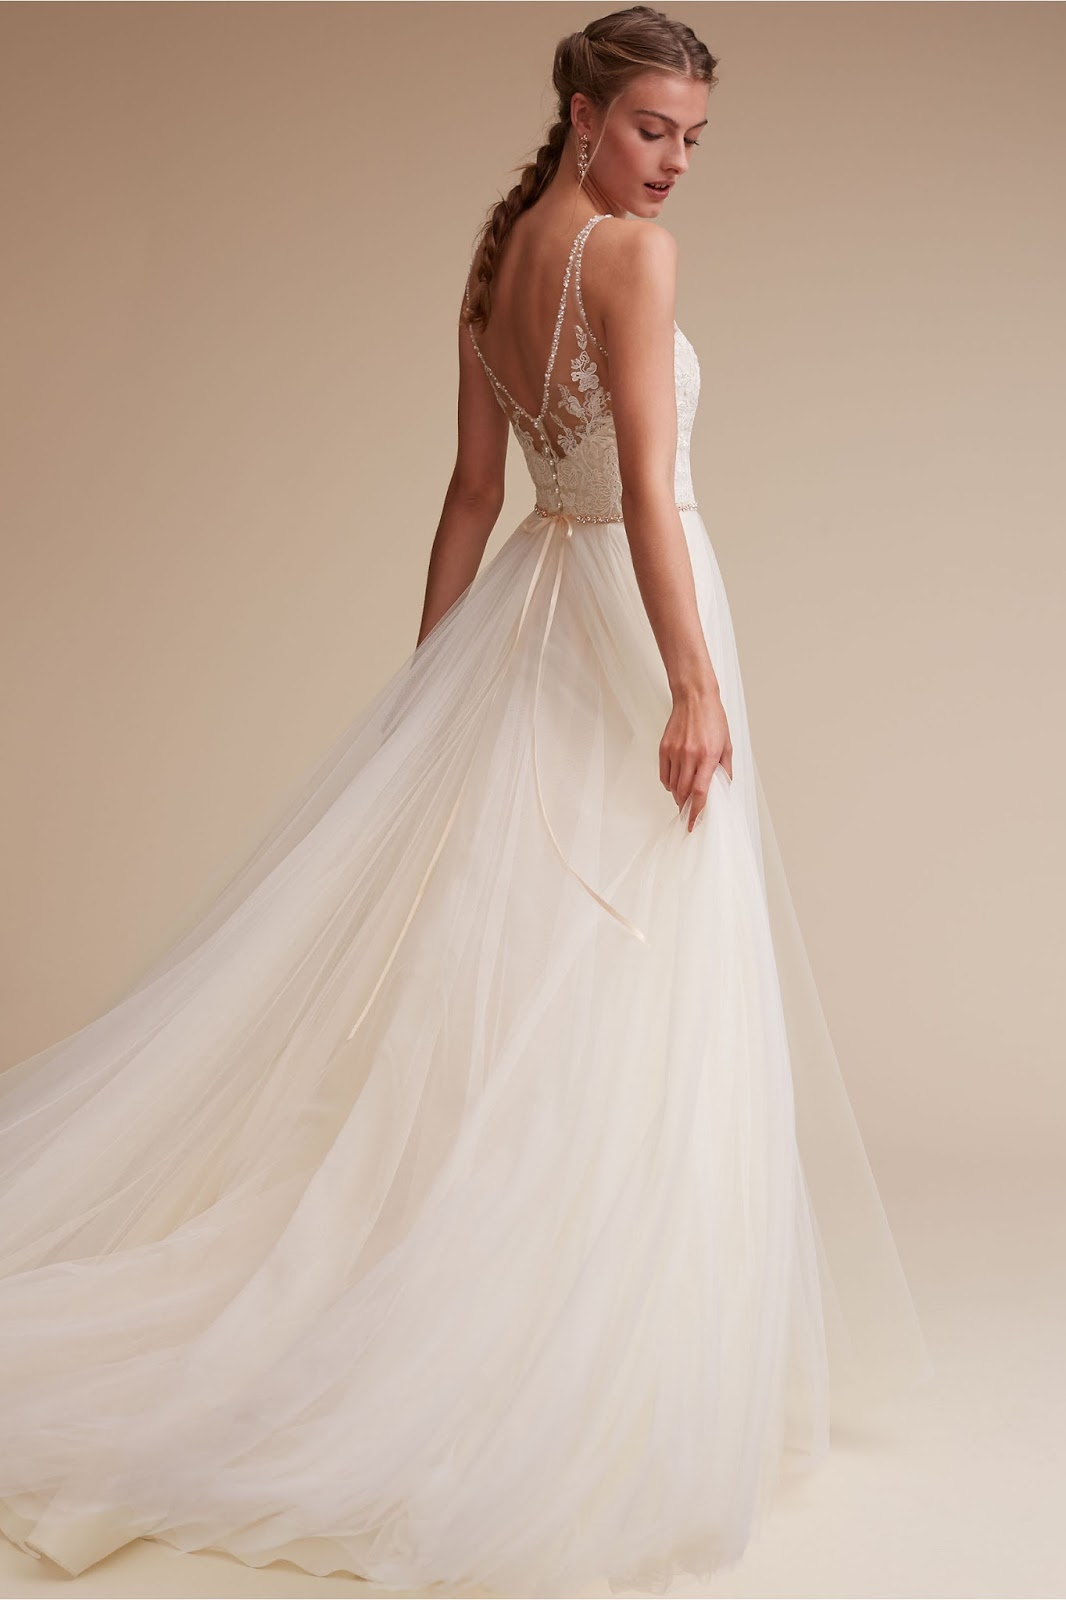 Miss Ruby Boutique  BHLDN Gowns at Miss Ruby Boutique  BHLDN s Cassia Gown